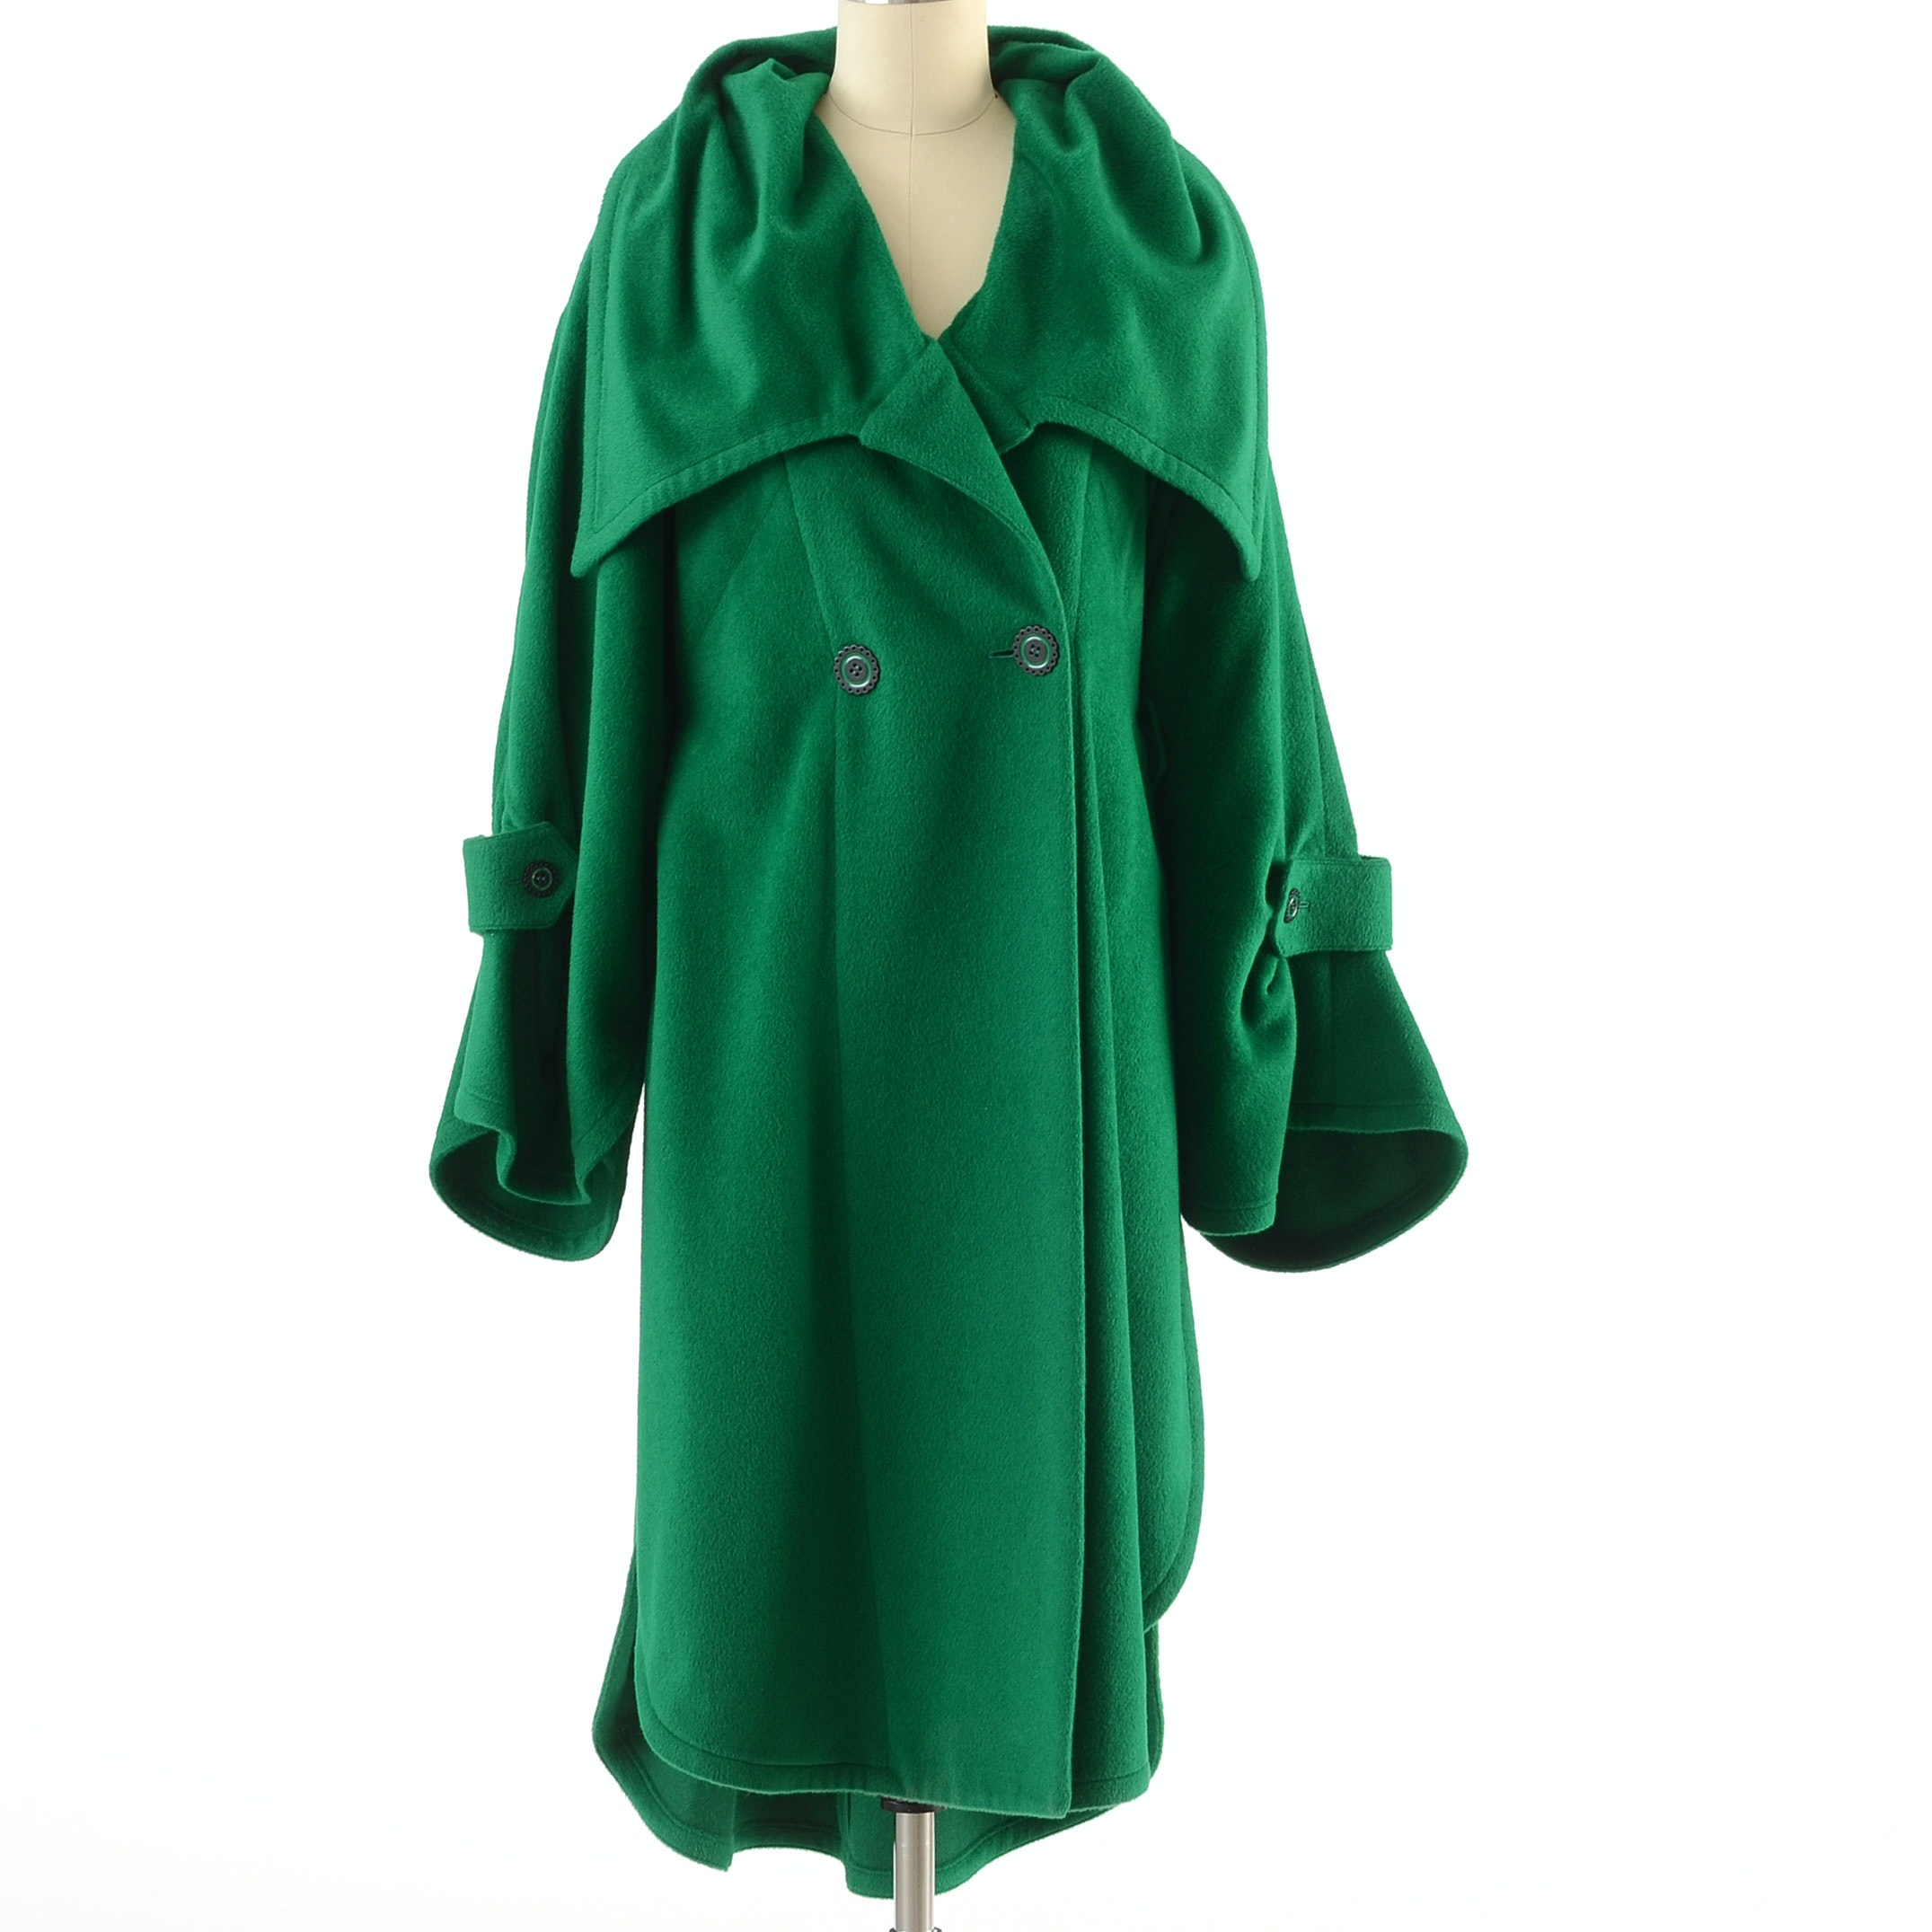 Karl Lagerfeld Emerald Green Angora and Lambswool Blend Panel Coat